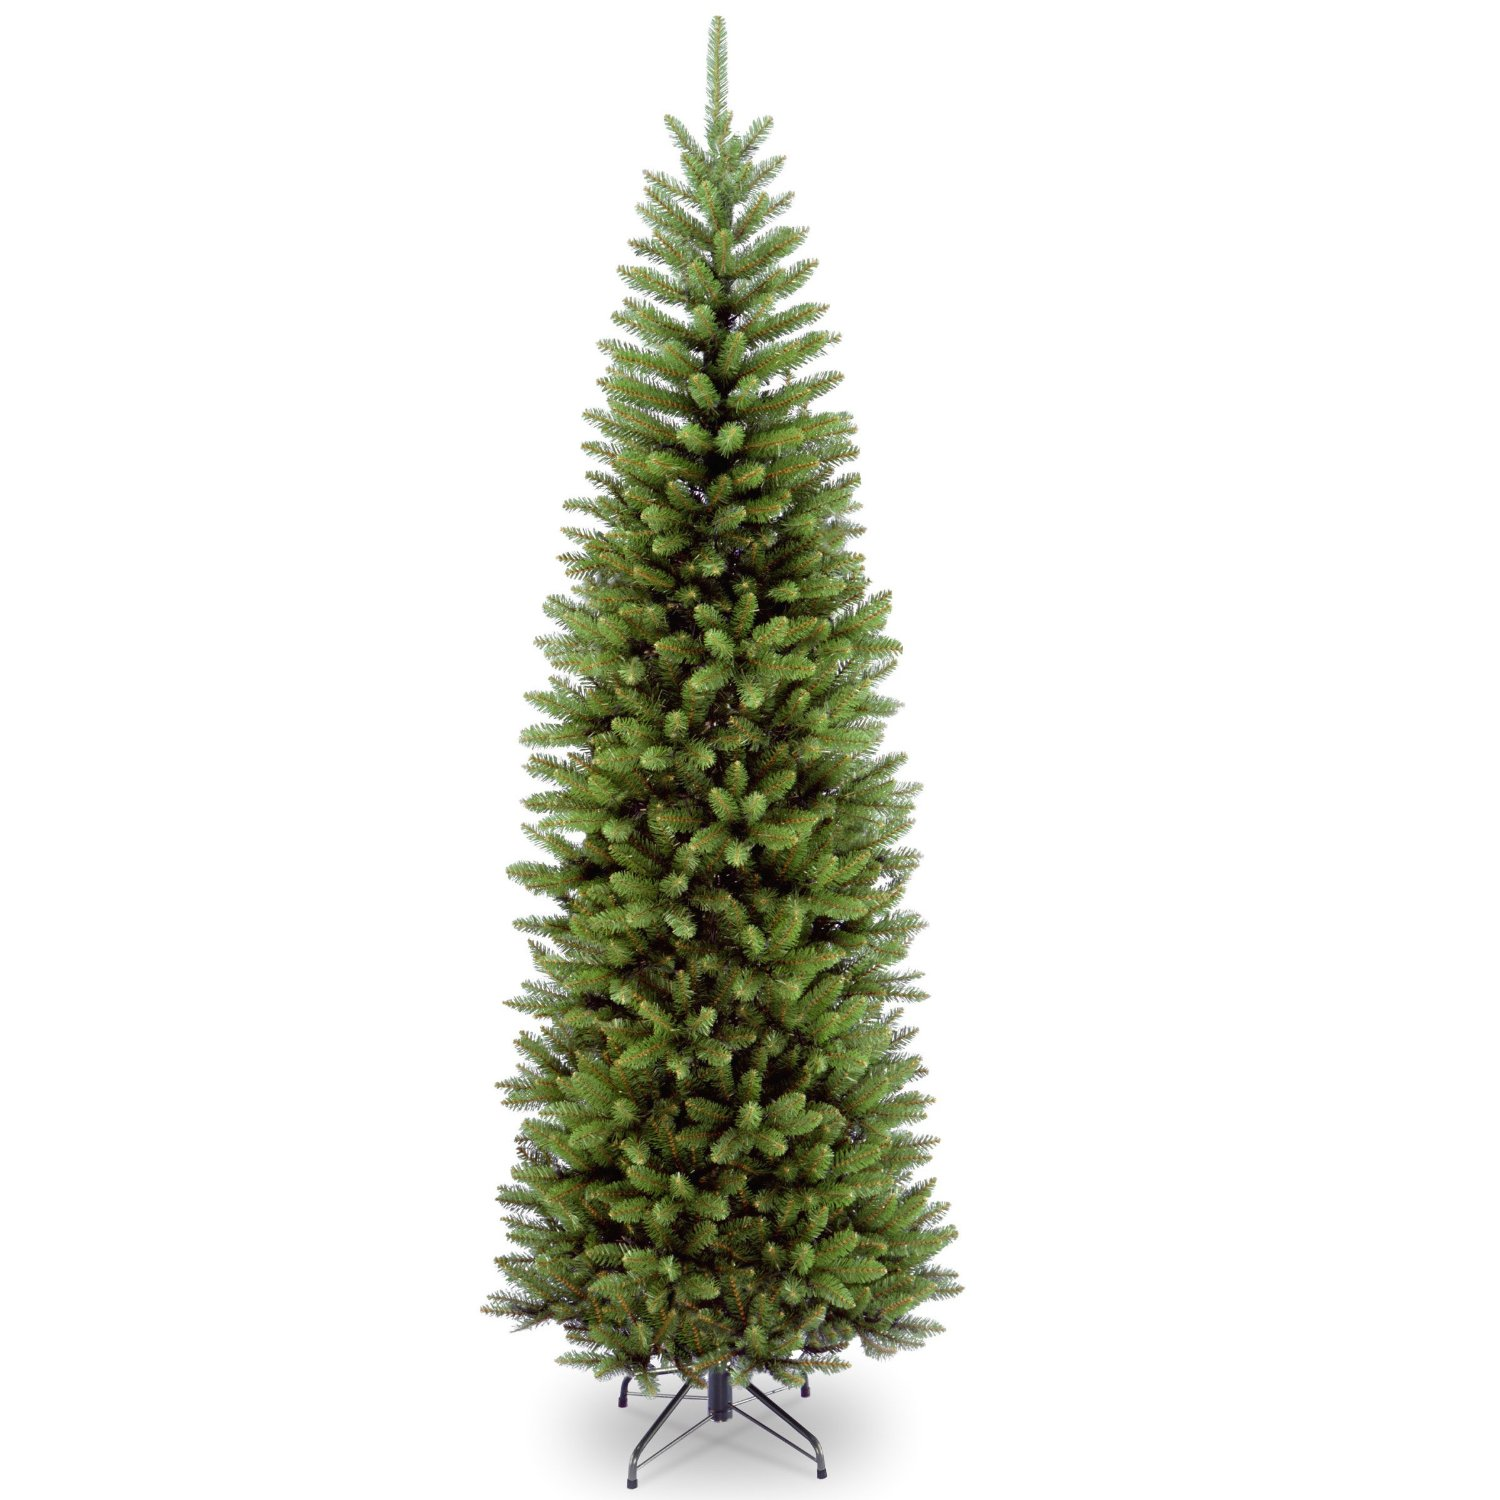 cheap fake christmas trees - learntoride.co